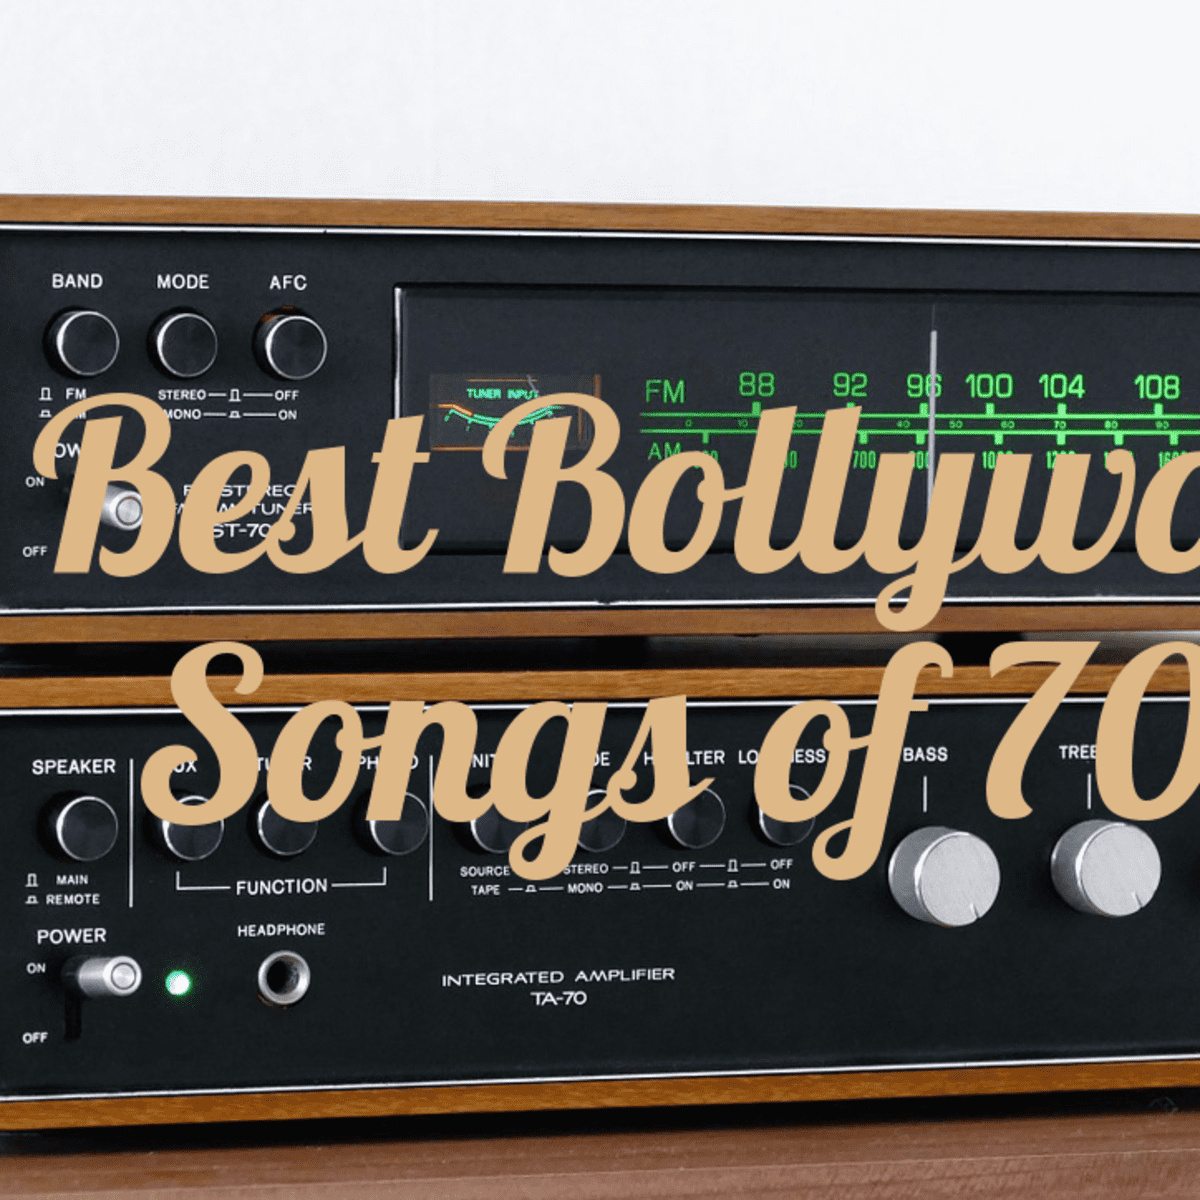 Top 150 Hindi Songs Of 1970s Spinditty Music Female model required for hindi movie by senger movies & entertainment. top 150 hindi songs of 1970s